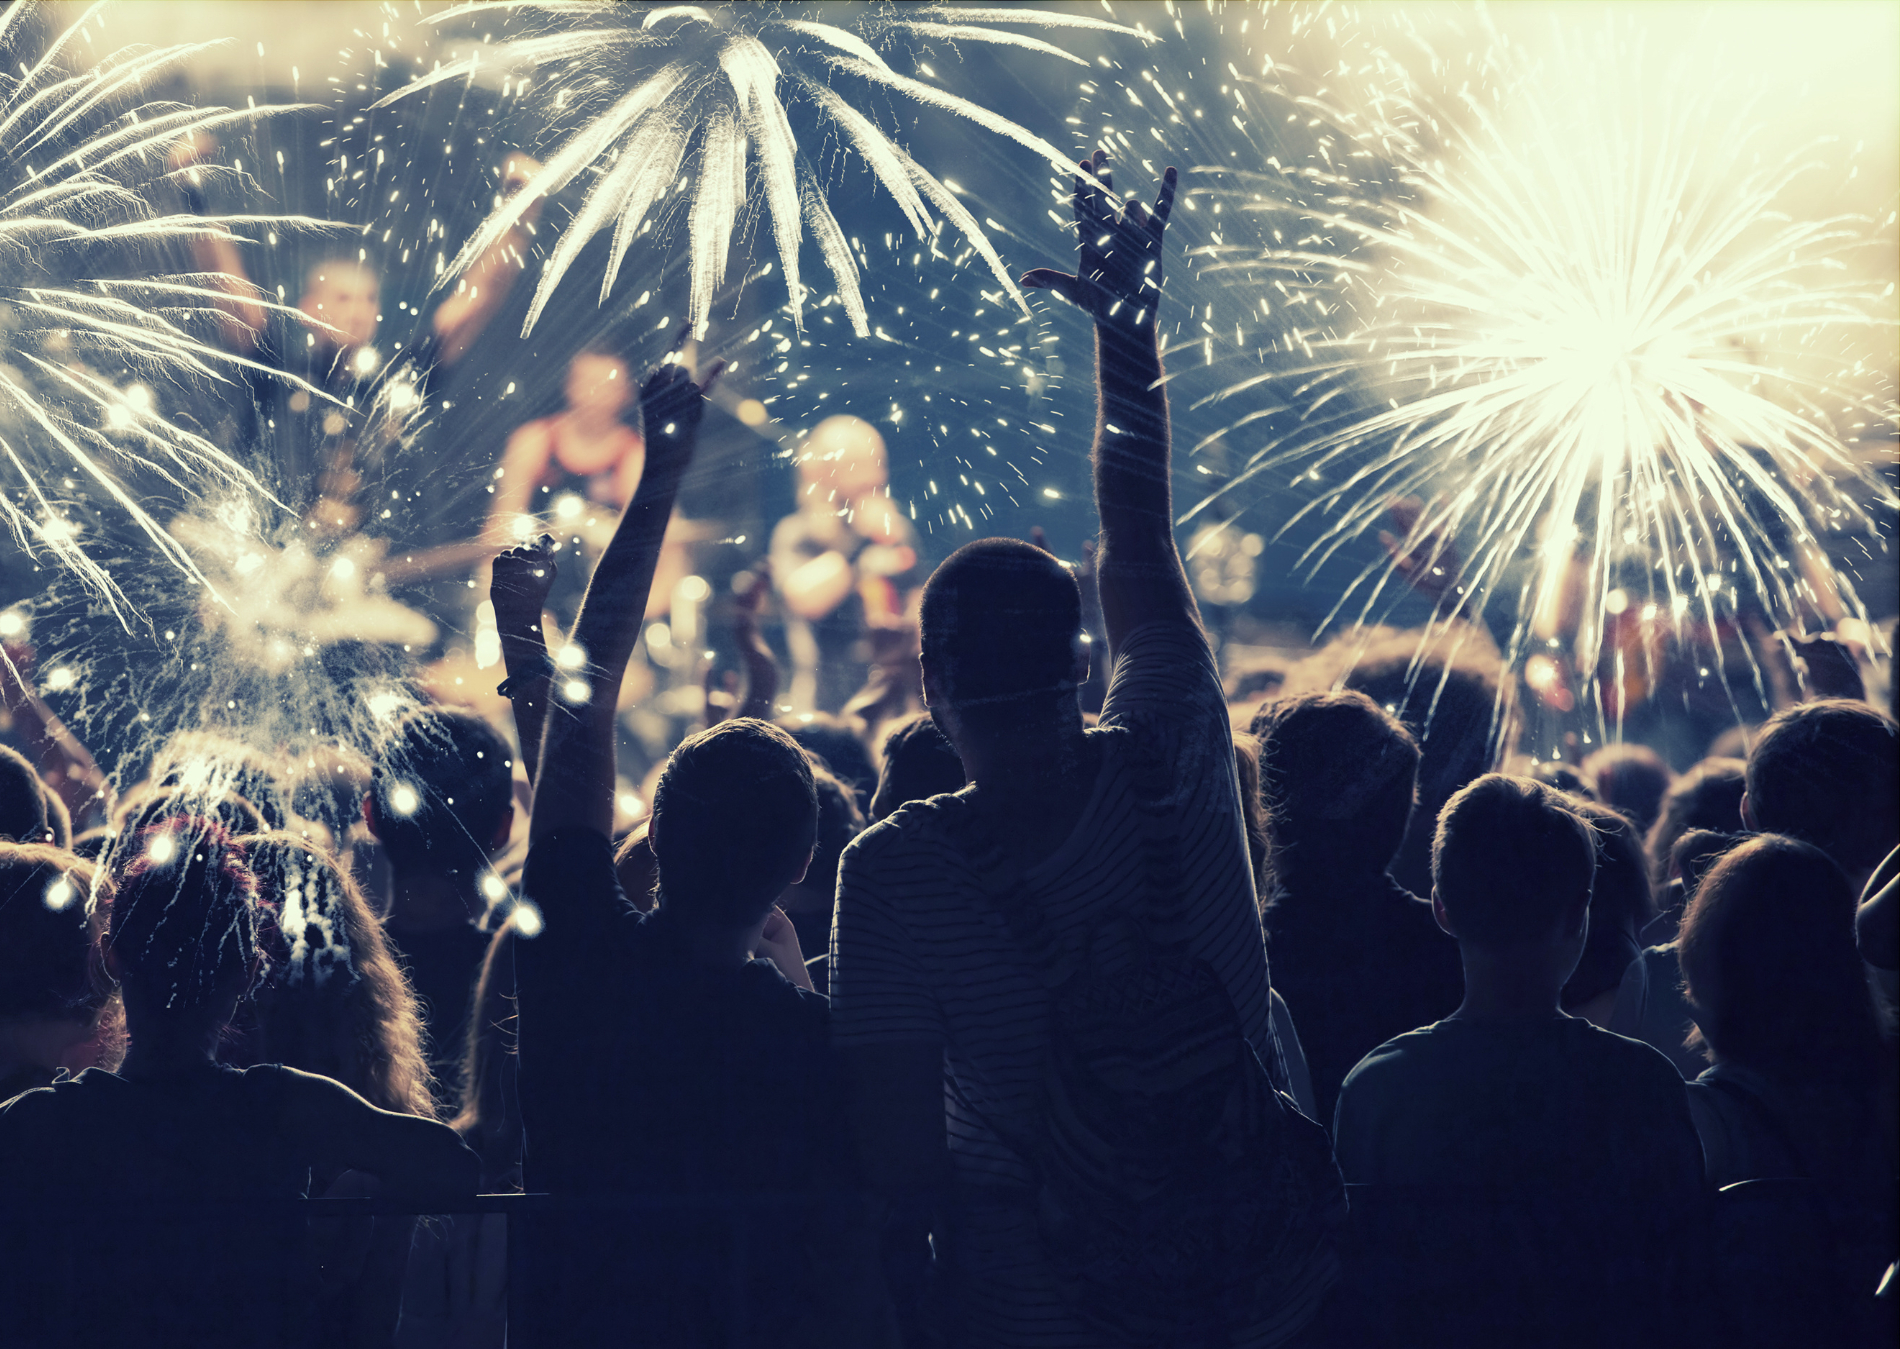 How to Have a Safe and Fun New Year's Eve